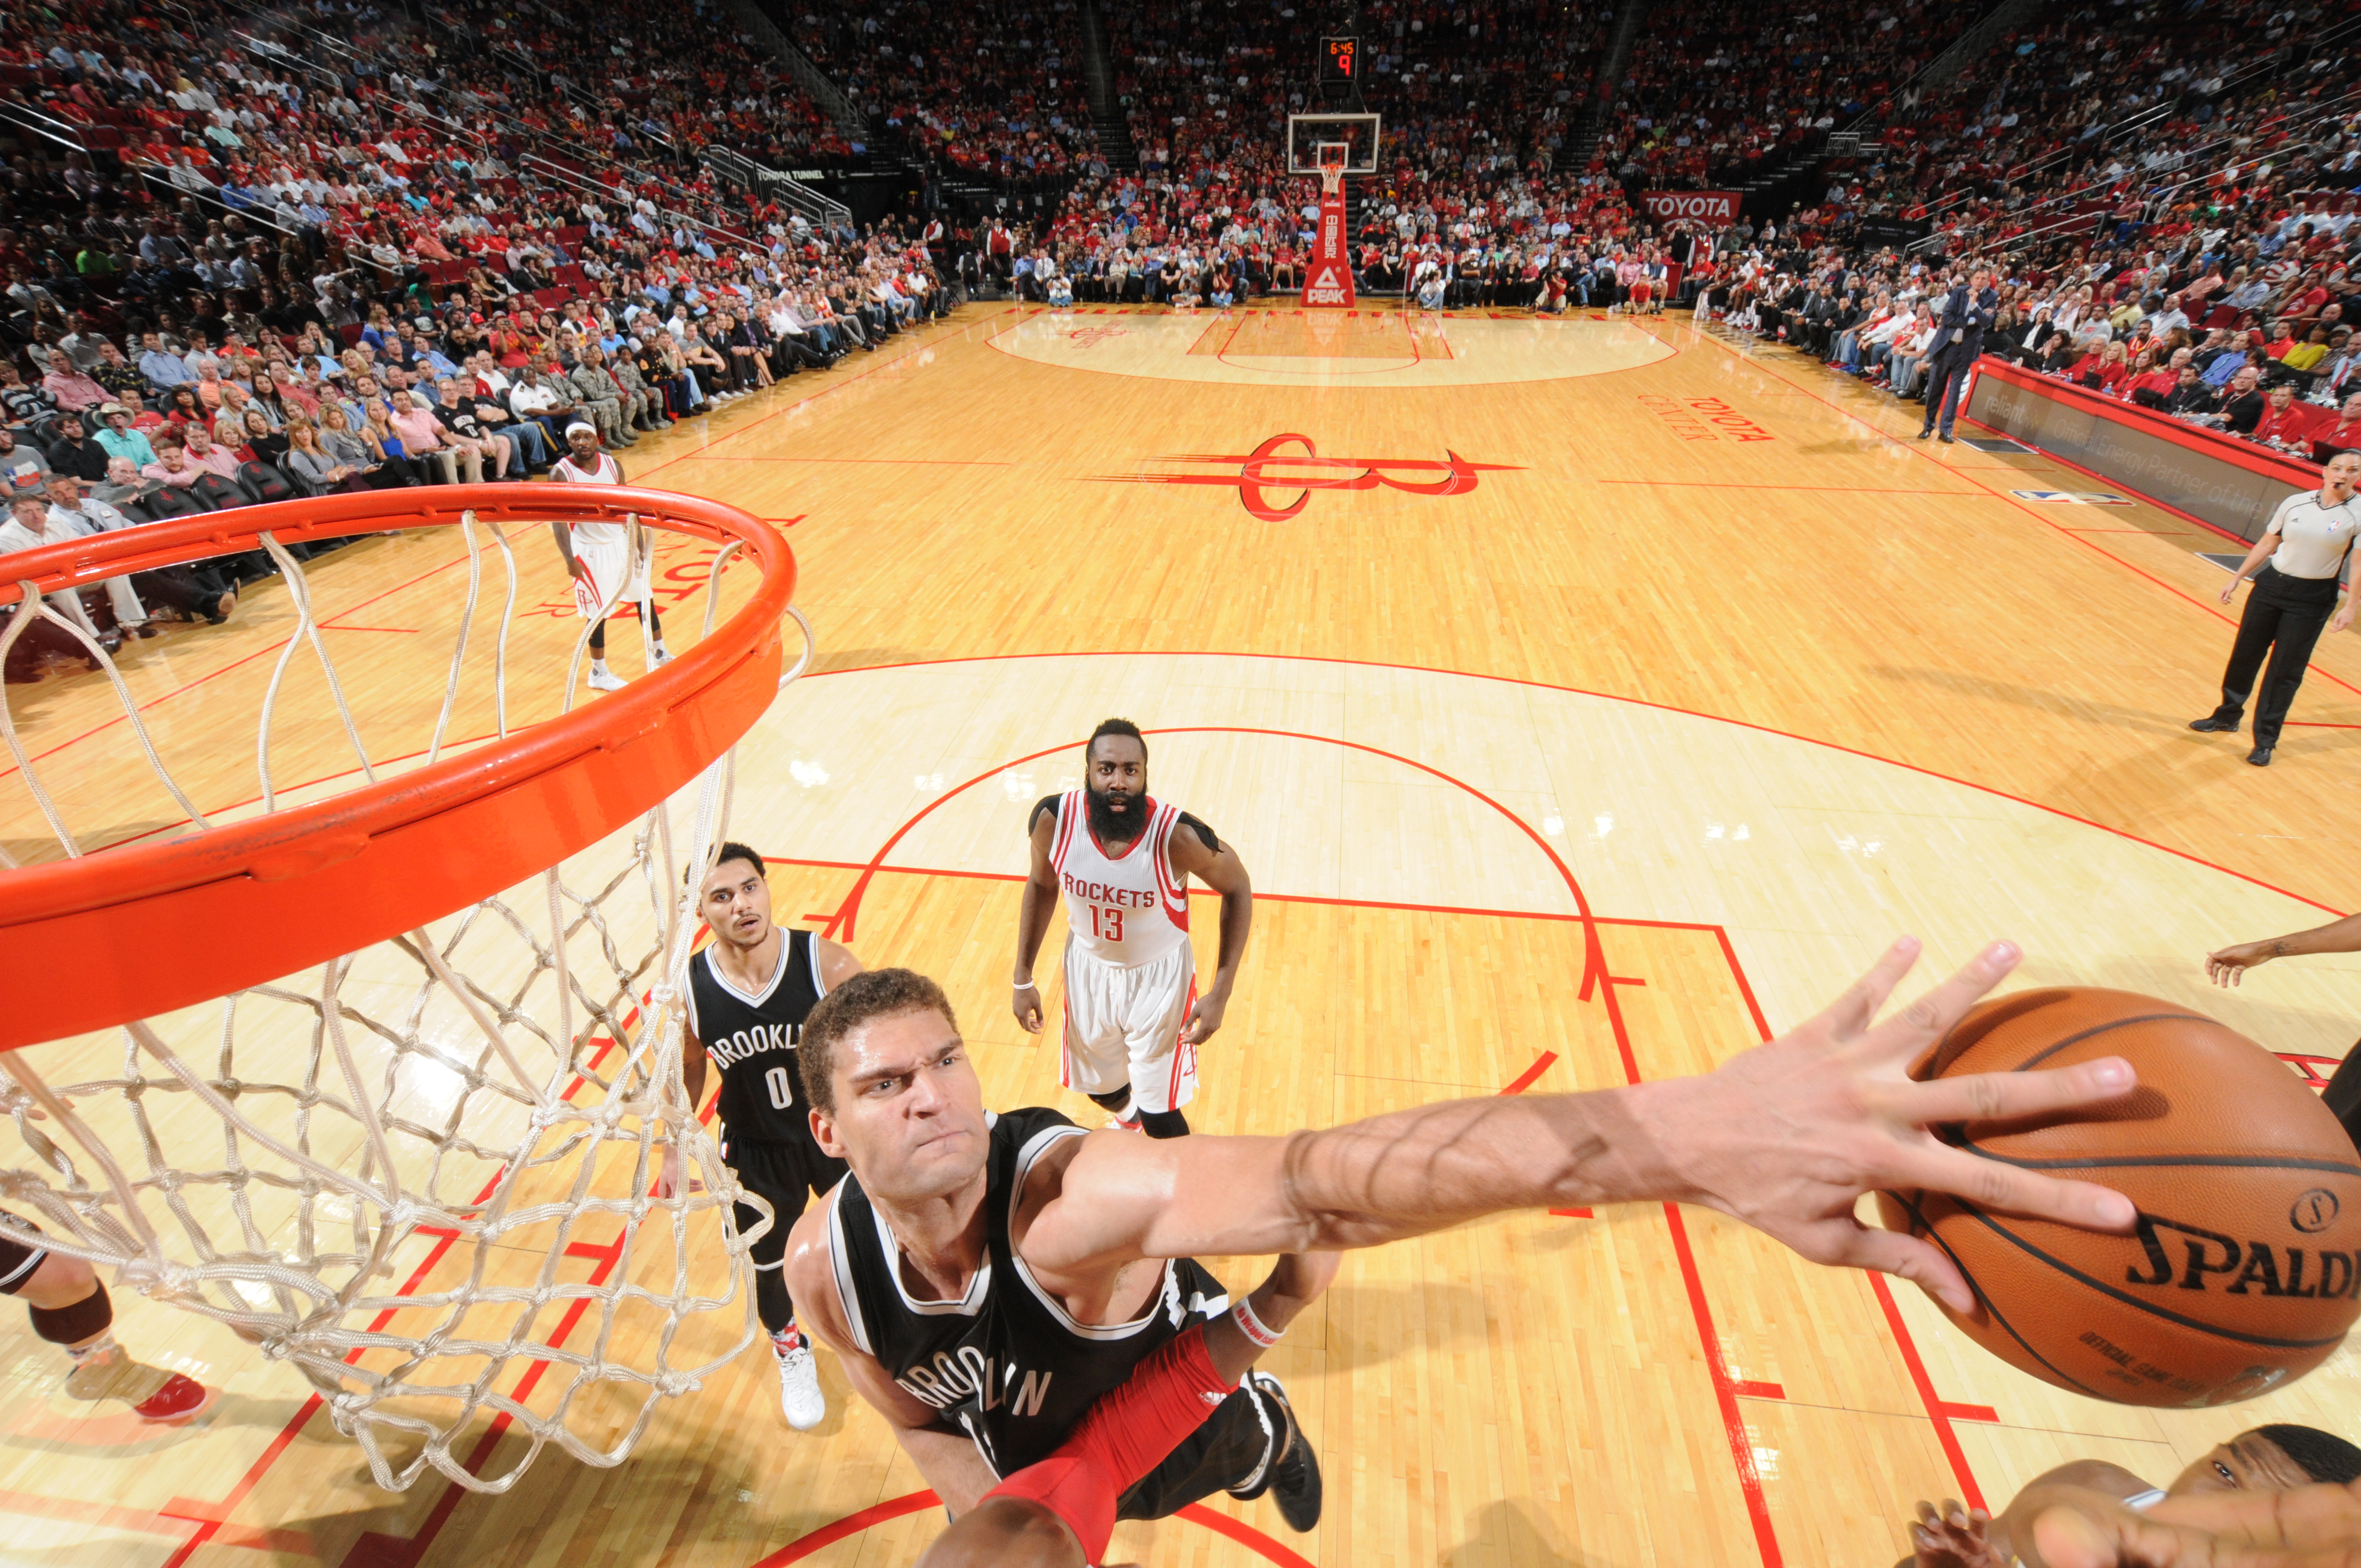 HOUSTON, TX - NOVEMBER 11:  Brook Lopez #11 of the Brooklyn Nets blocks a shot against the Houston Rockets on November 11, 2015 at the Toyota Center in Houston, Texas. (Photo by Bill Baptist/NBAE via Getty Images)